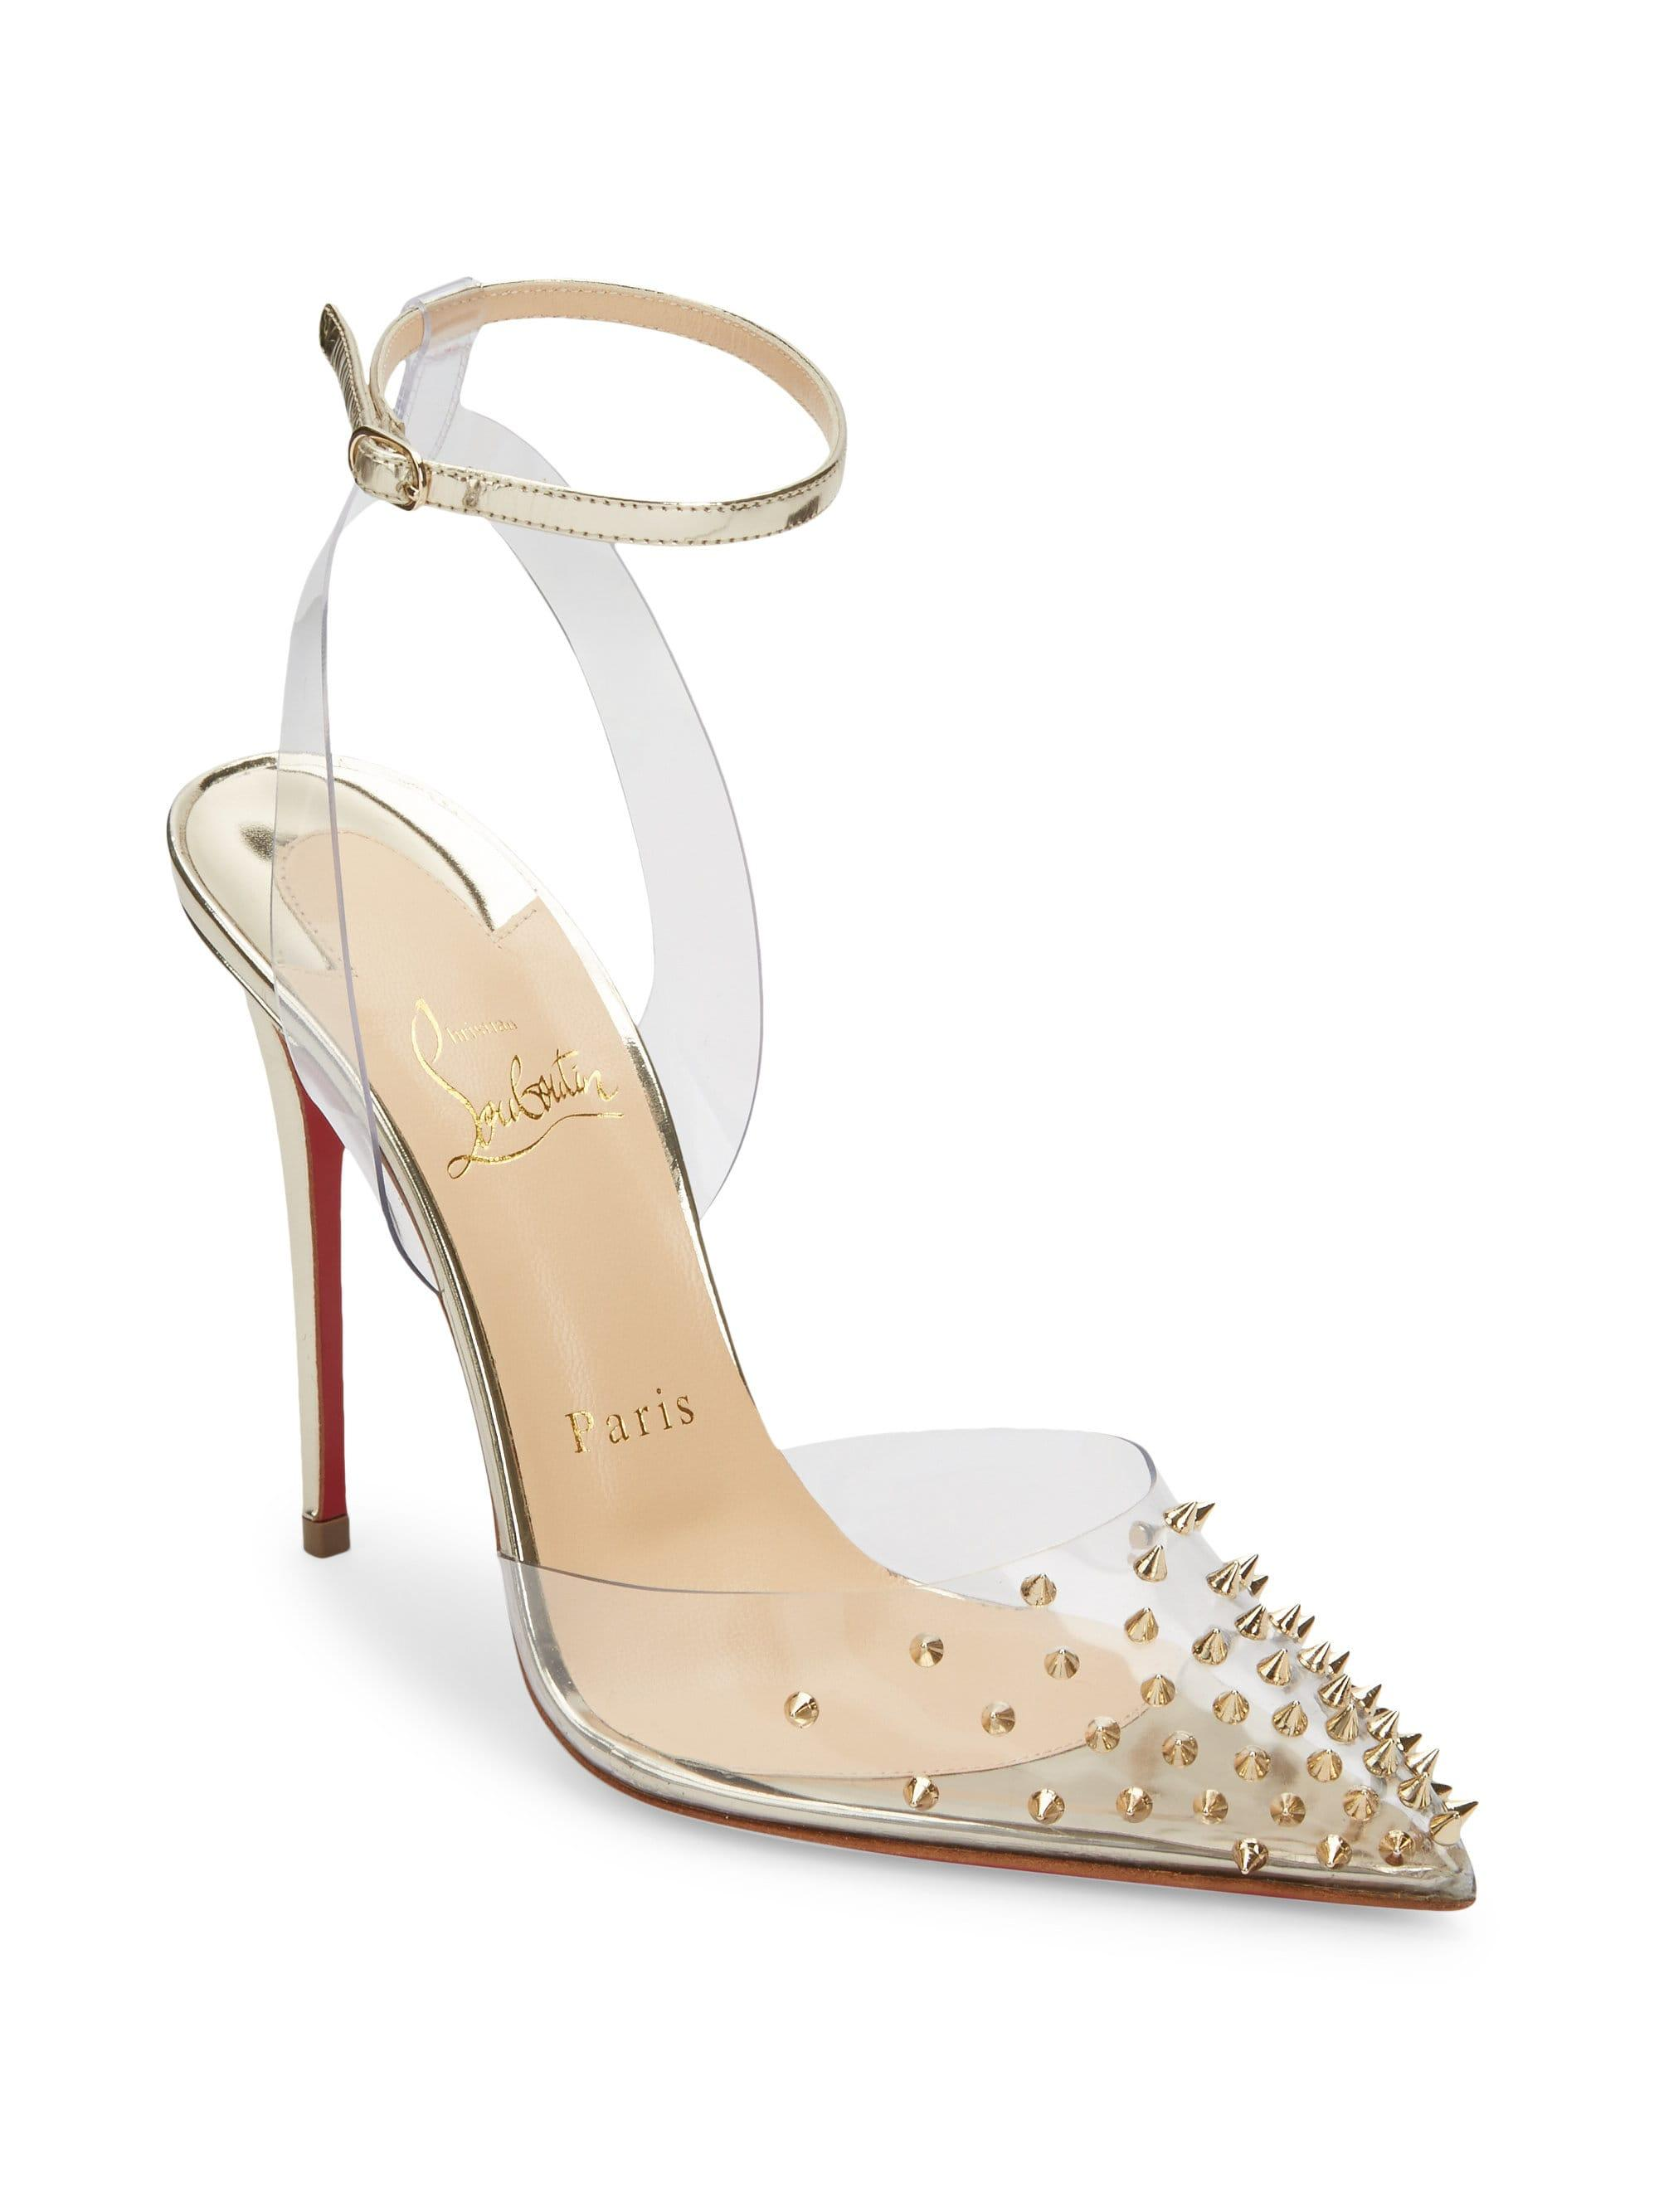 cba379b88d6 Christian Louboutin Spikko 100 Studded Translucent Pumps in Metallic ...